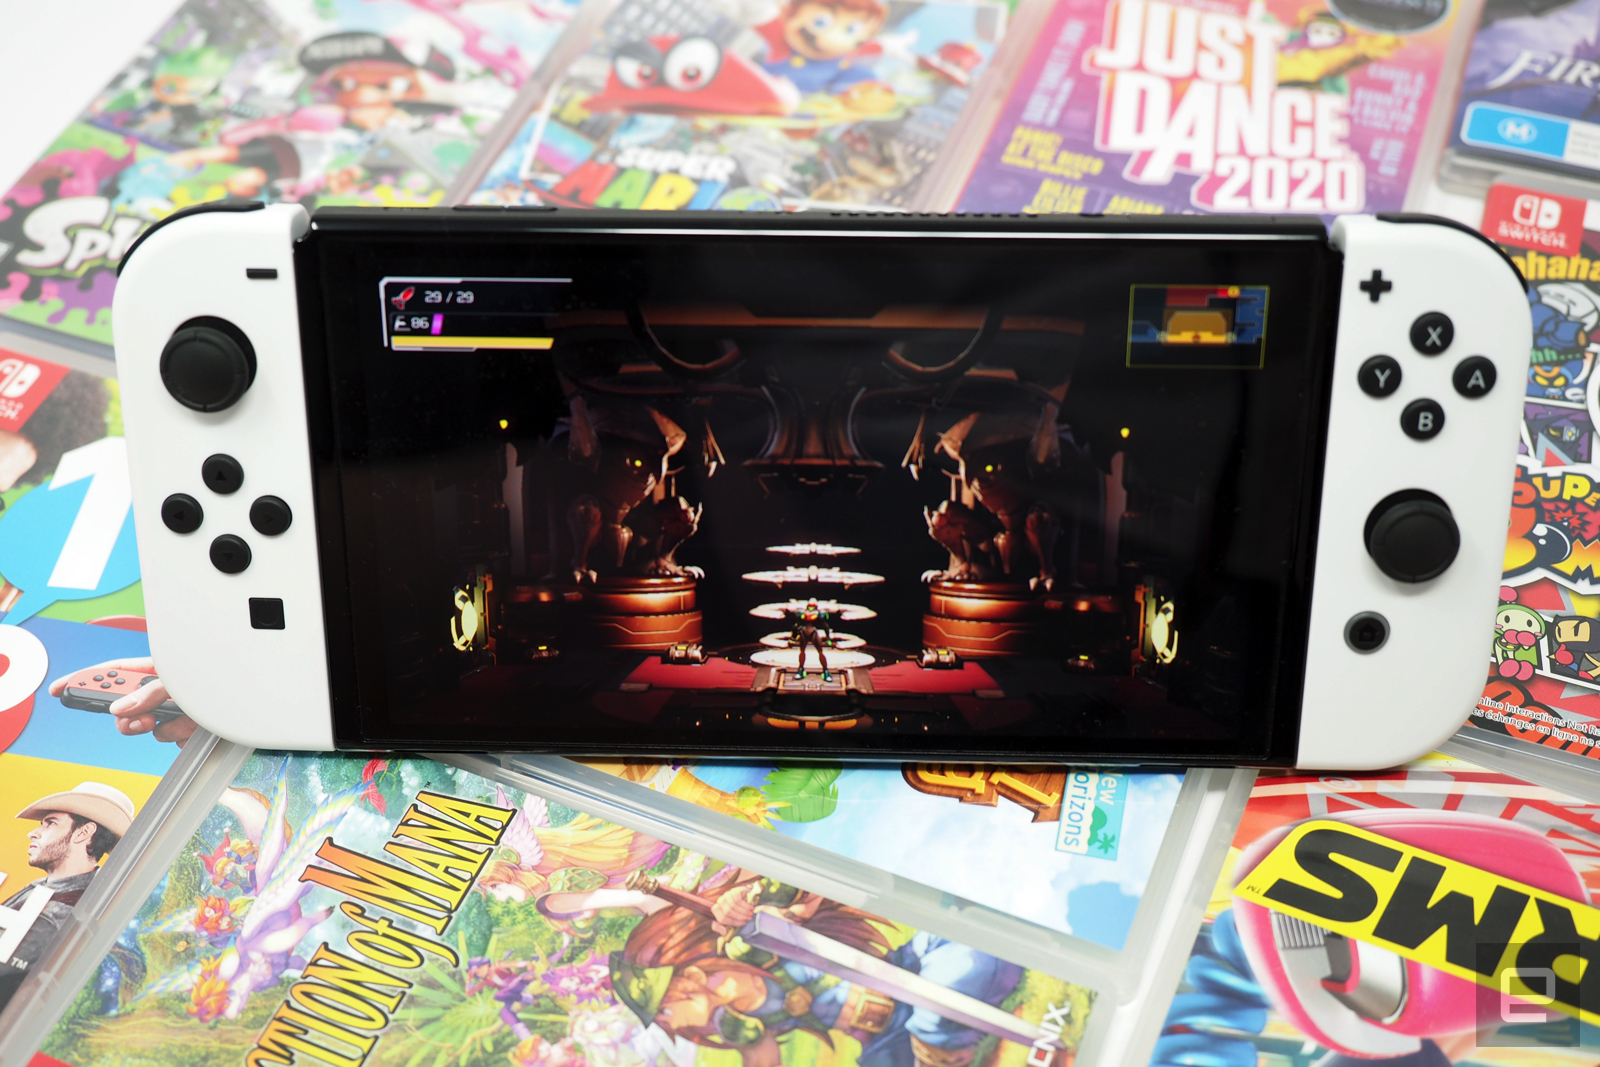 Nintendo Switch OLED review: Beautiful, but not a must-have, Gift Card Maverick, giftcardmaverick.com